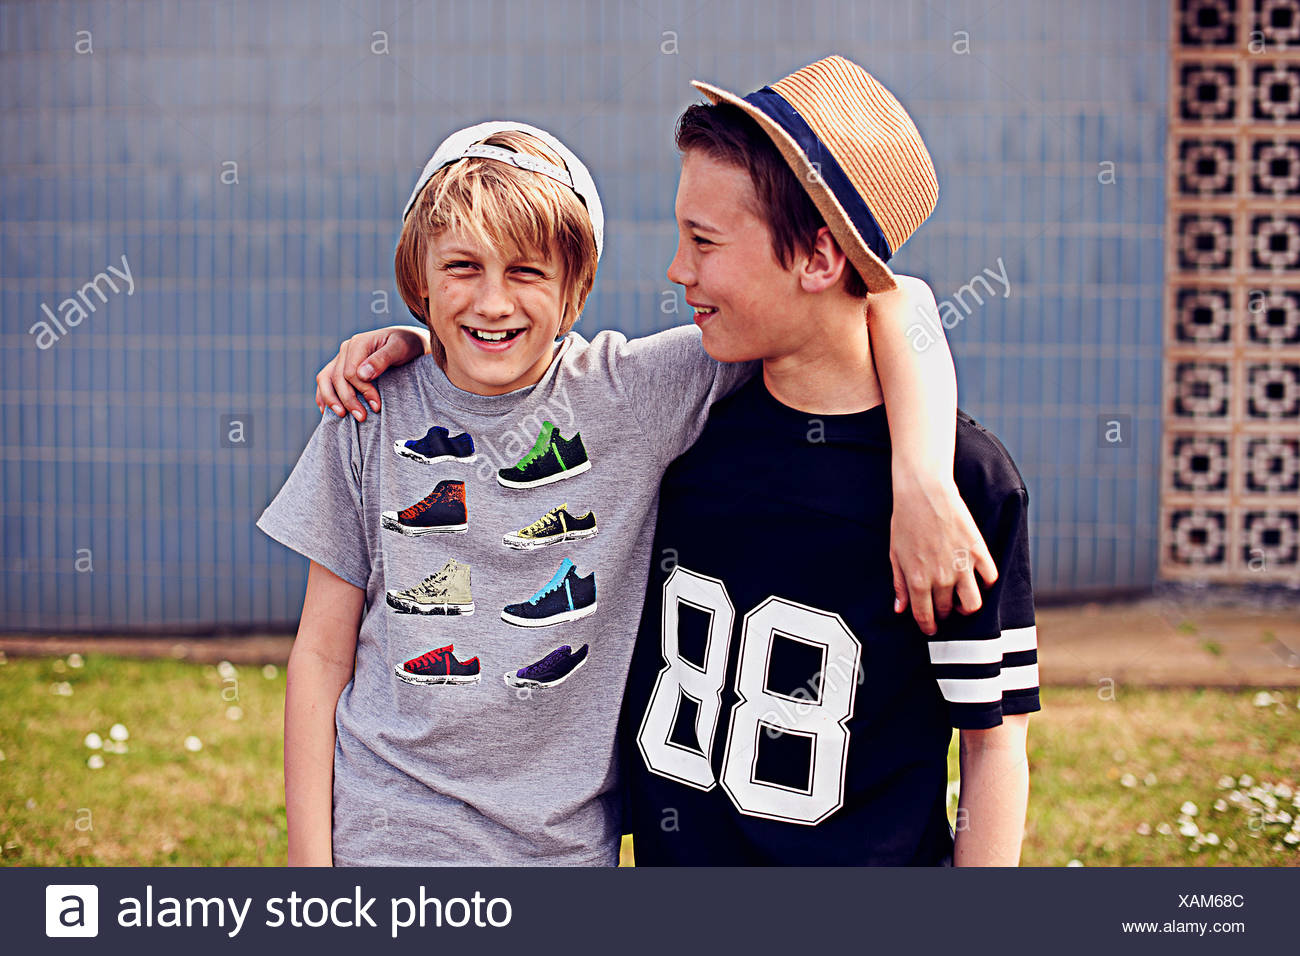 Two boys with arms around each other, portrait - Stock Image